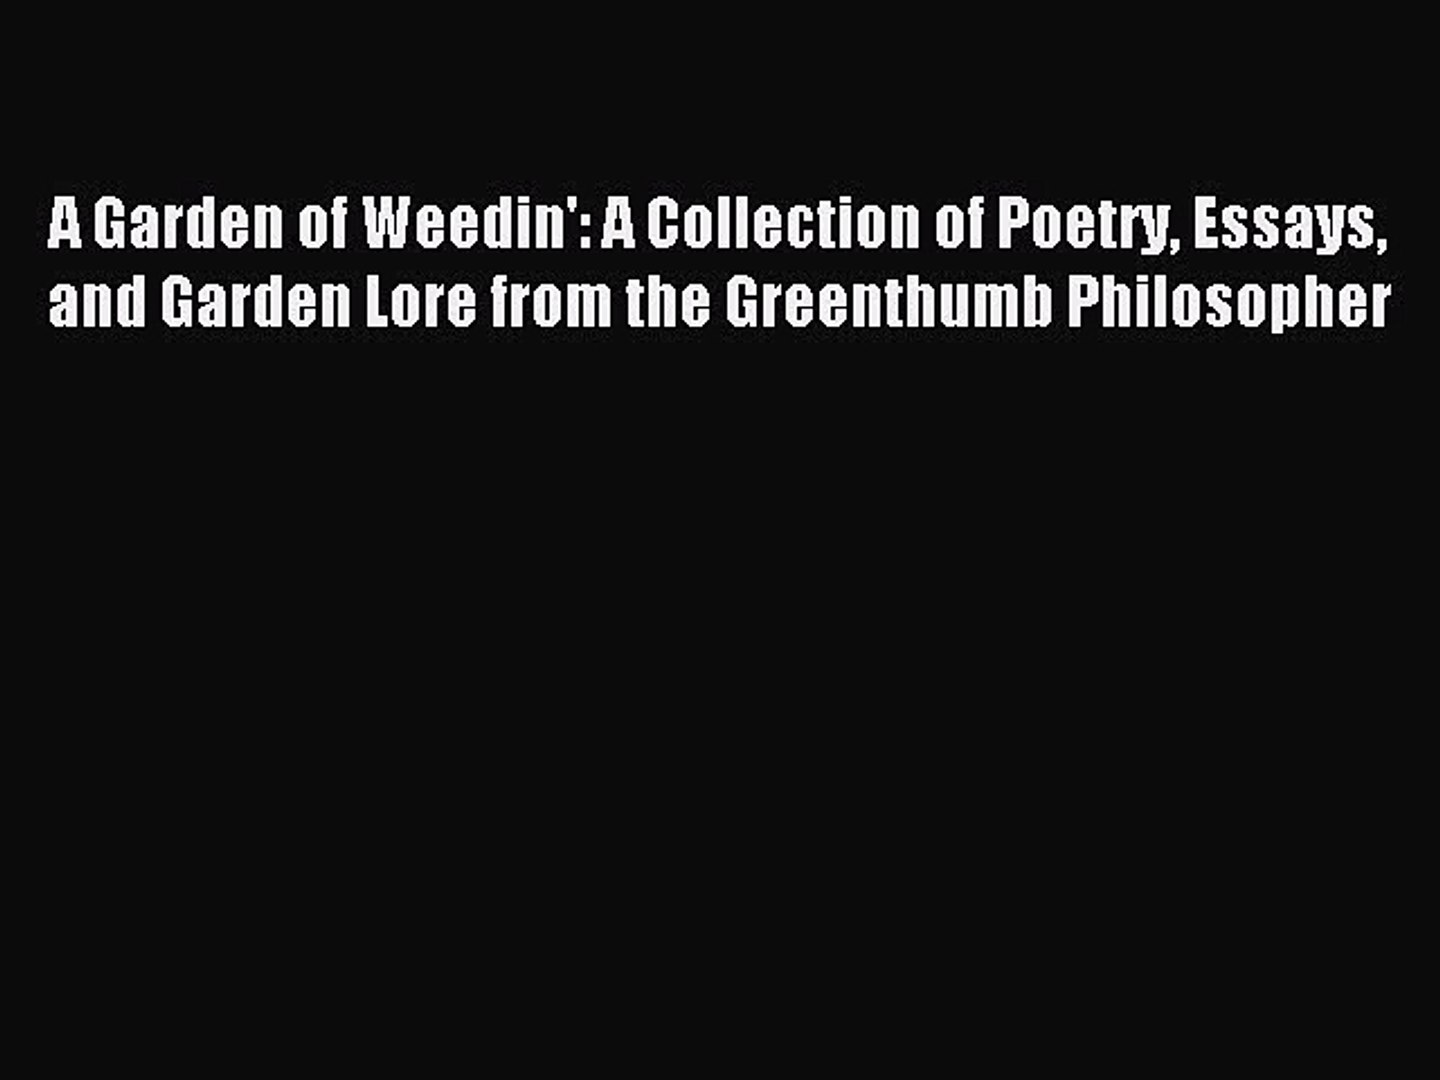 Read A Garden of Weedin': A Collection of Poetry Essays and Garden Lore from the Greenthumb